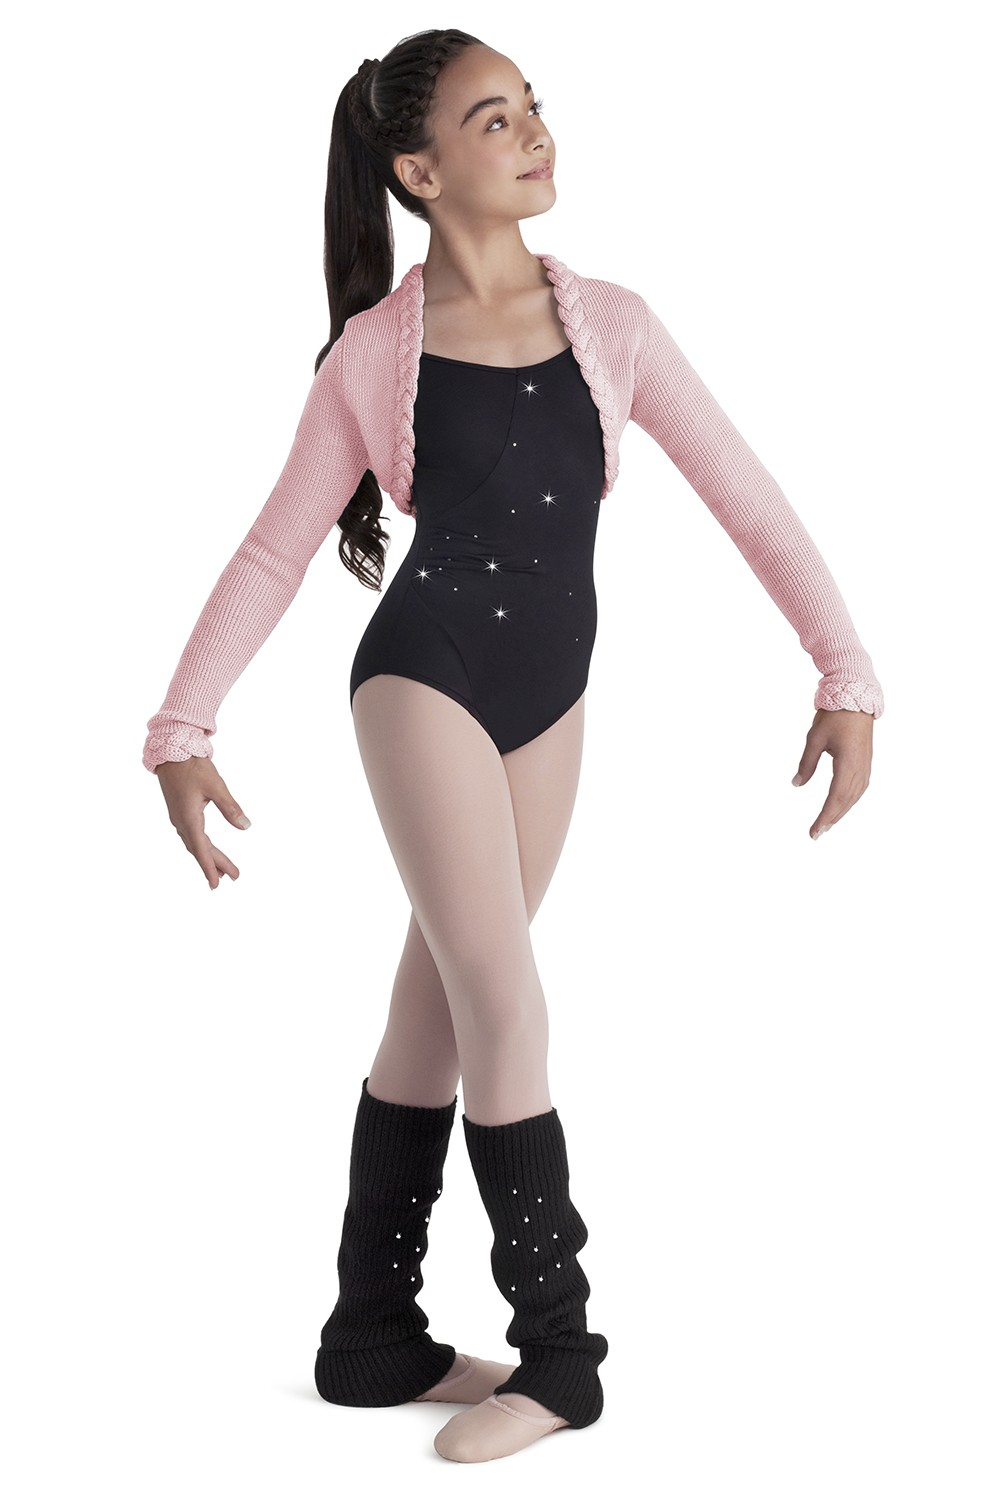 Girls Bolero Children's Dance Tops